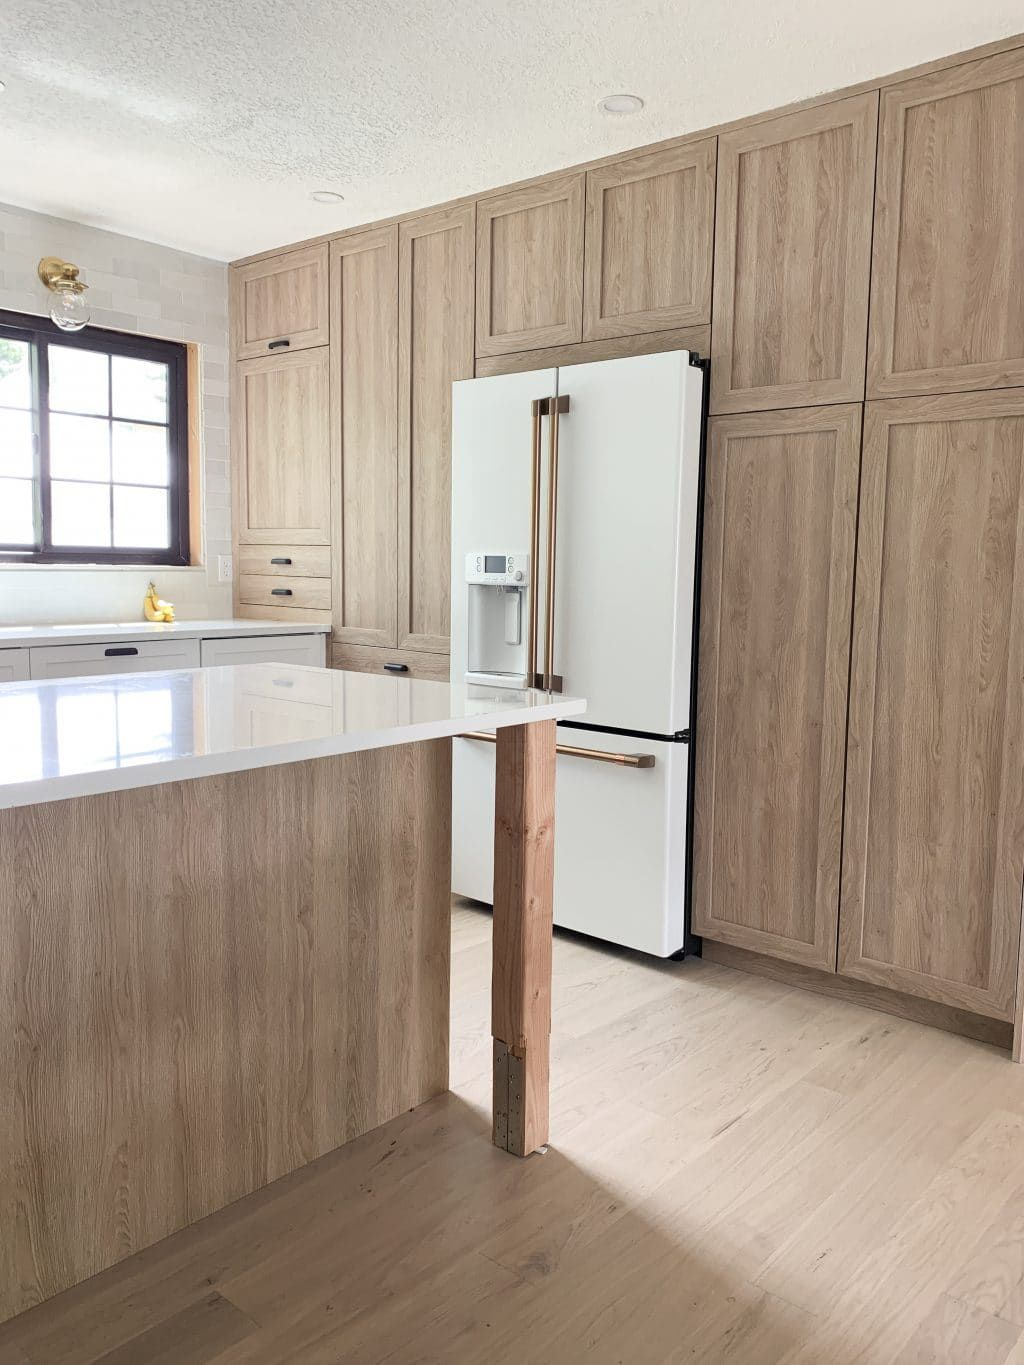 Everything You Need To Know About Using Semihandmade Fronts With Ikea Cabinets And Our Cove Line In The Fullmer Kitchen Replacement Kitchen Doors Kitchen Cabinets Fronts Ikea Kitchen